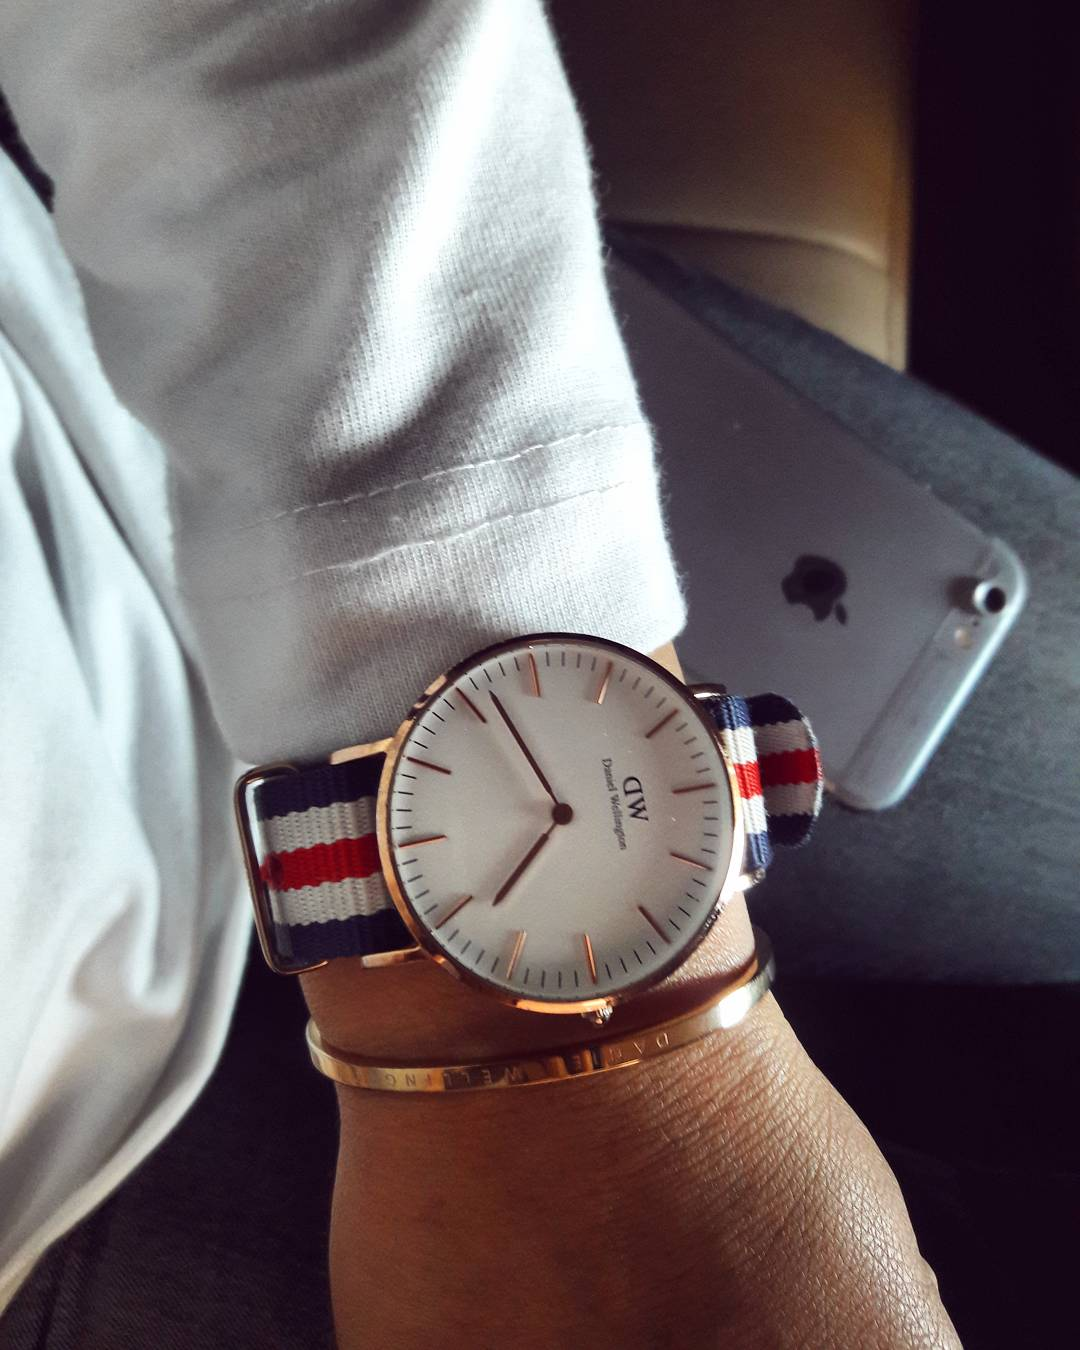 Always started and starting my day with @danielwellington watch and its accessories 😎 #fitdivastyles . . . . . . . #danielwellingtonwatches #danielwellingwatch #danielwellington #dwwatch #dw #watchlover #watchpost #timeismoney #bloggervibes #indianblogger #indianfashionblogger #bloggerstyle #blogger #fashiondiaries #fashionblogger